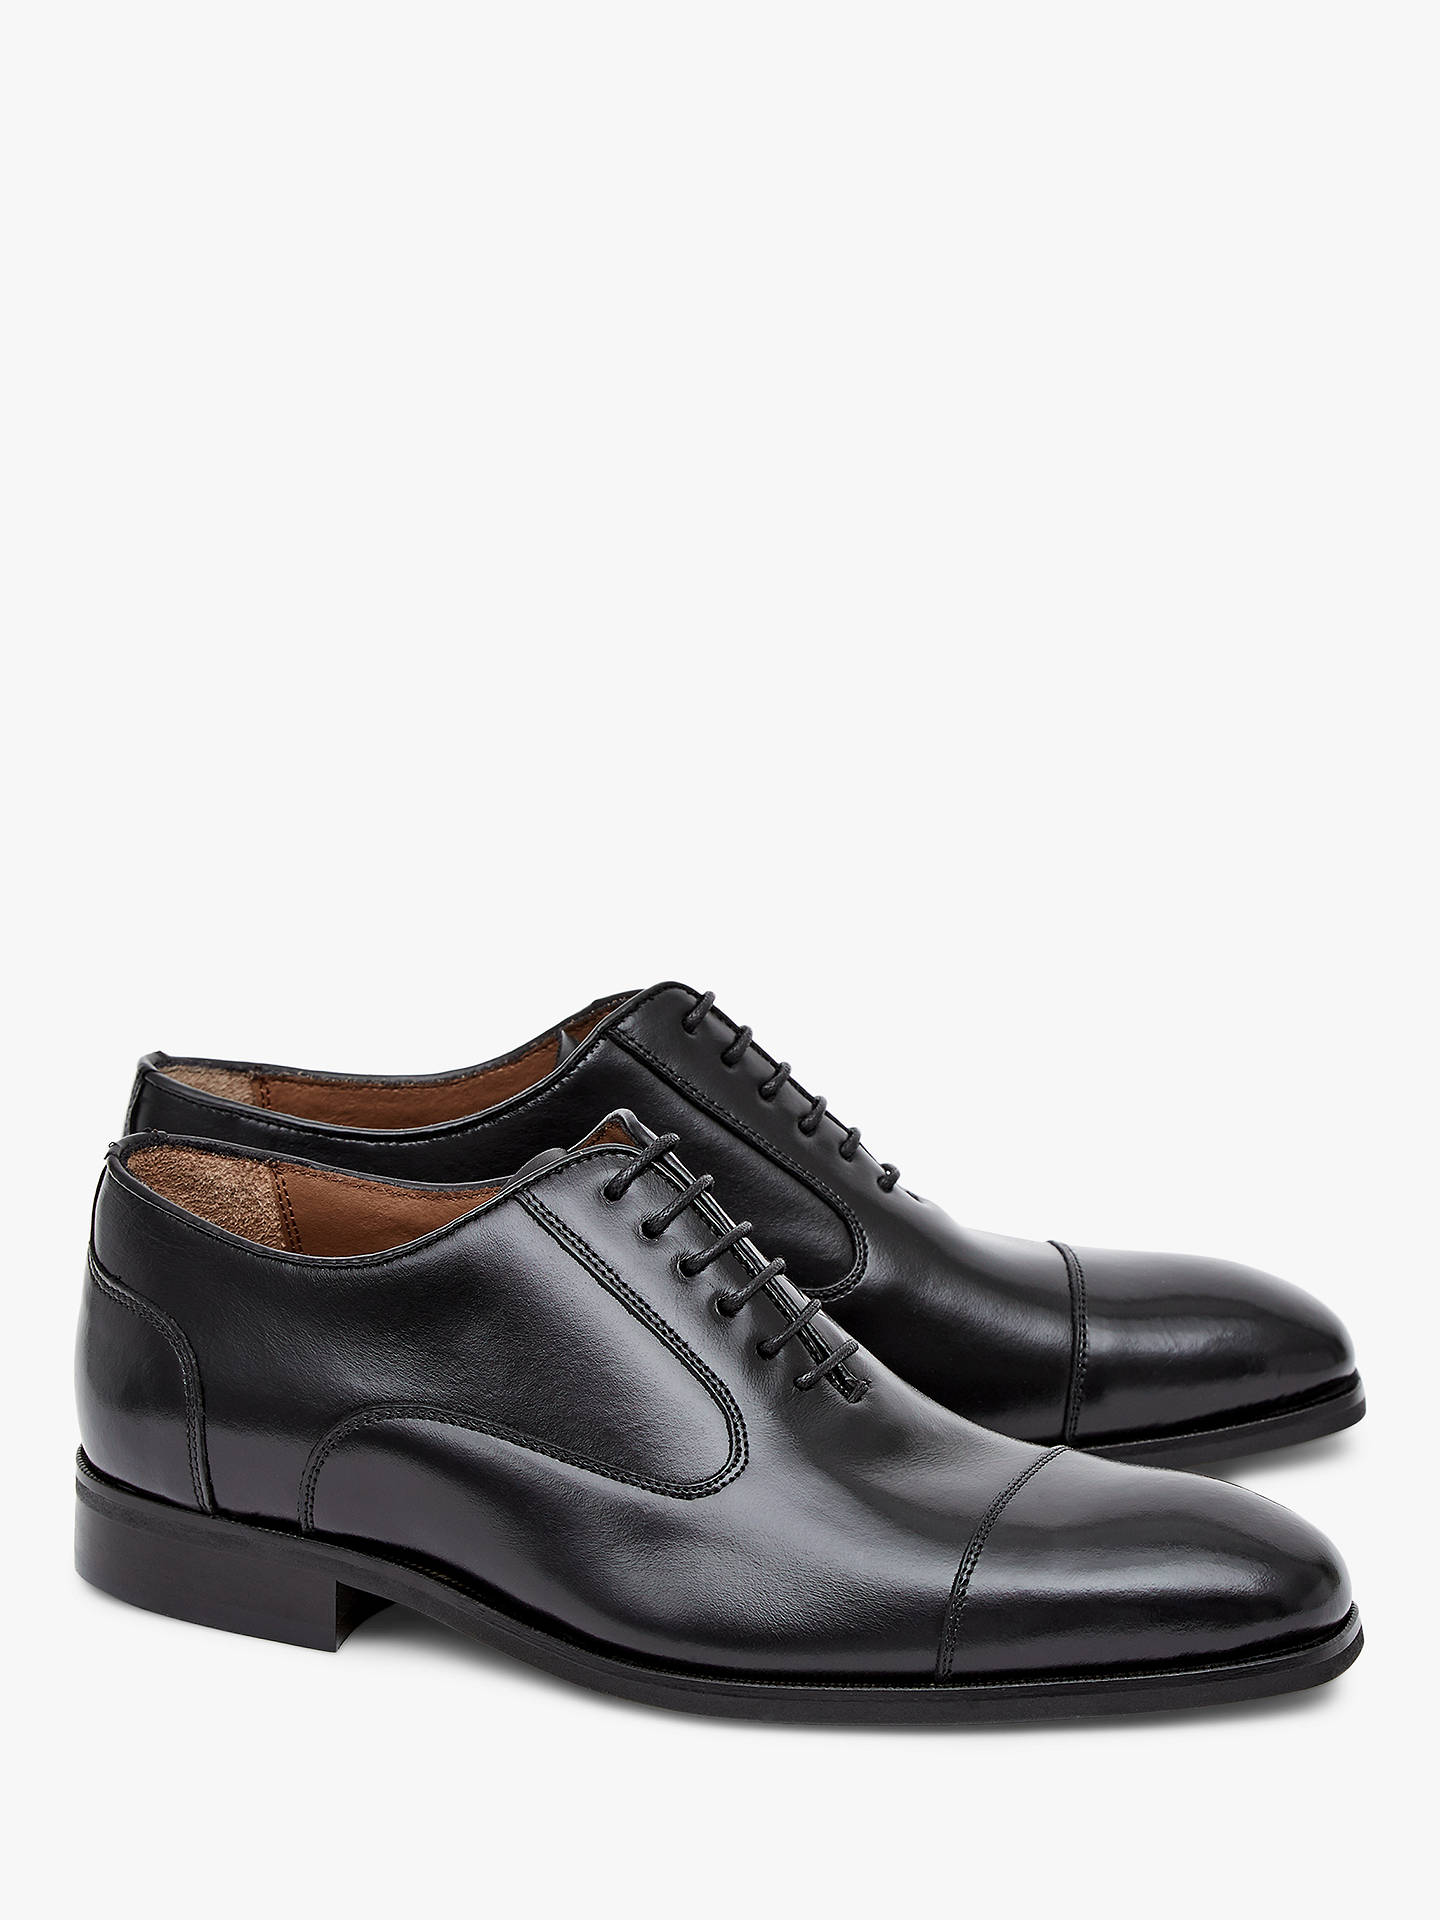 BuyReiss Reston Oxford Shoes, Black, 7 Online at johnlewis.com